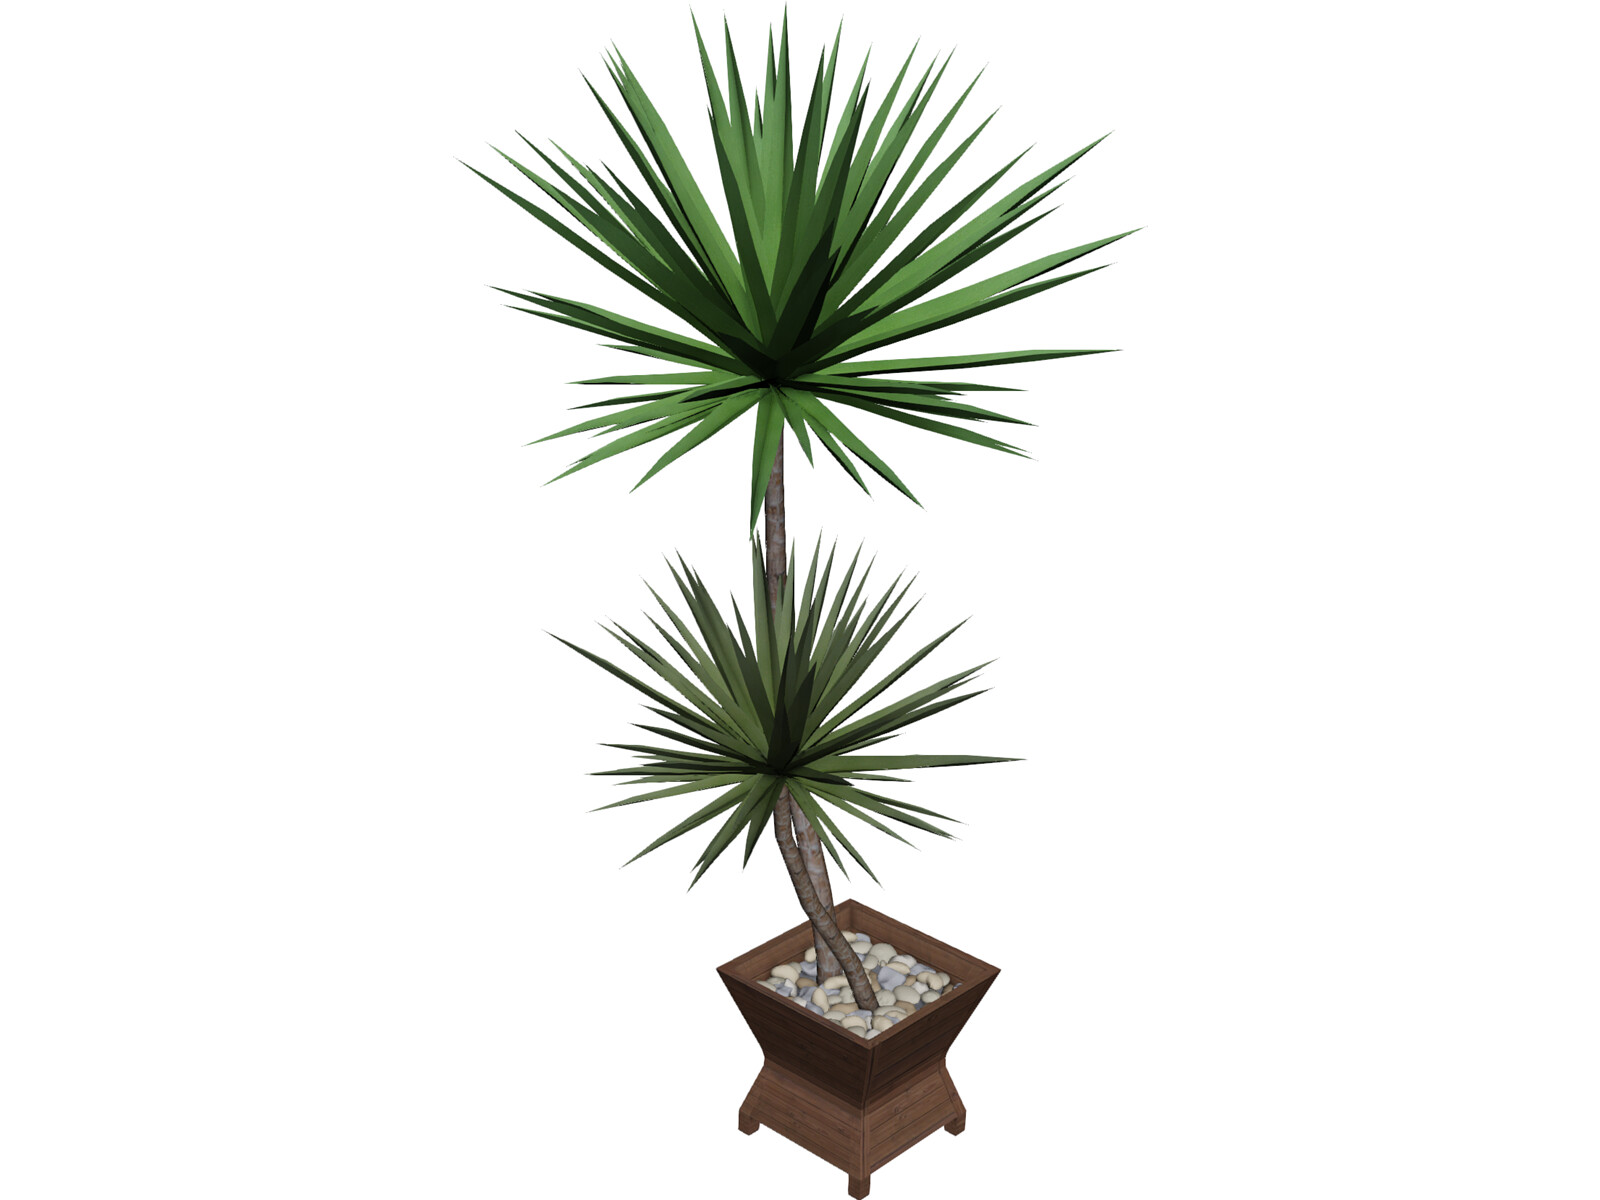 Yucca Plant Drawing Yucca Plant 3d Model